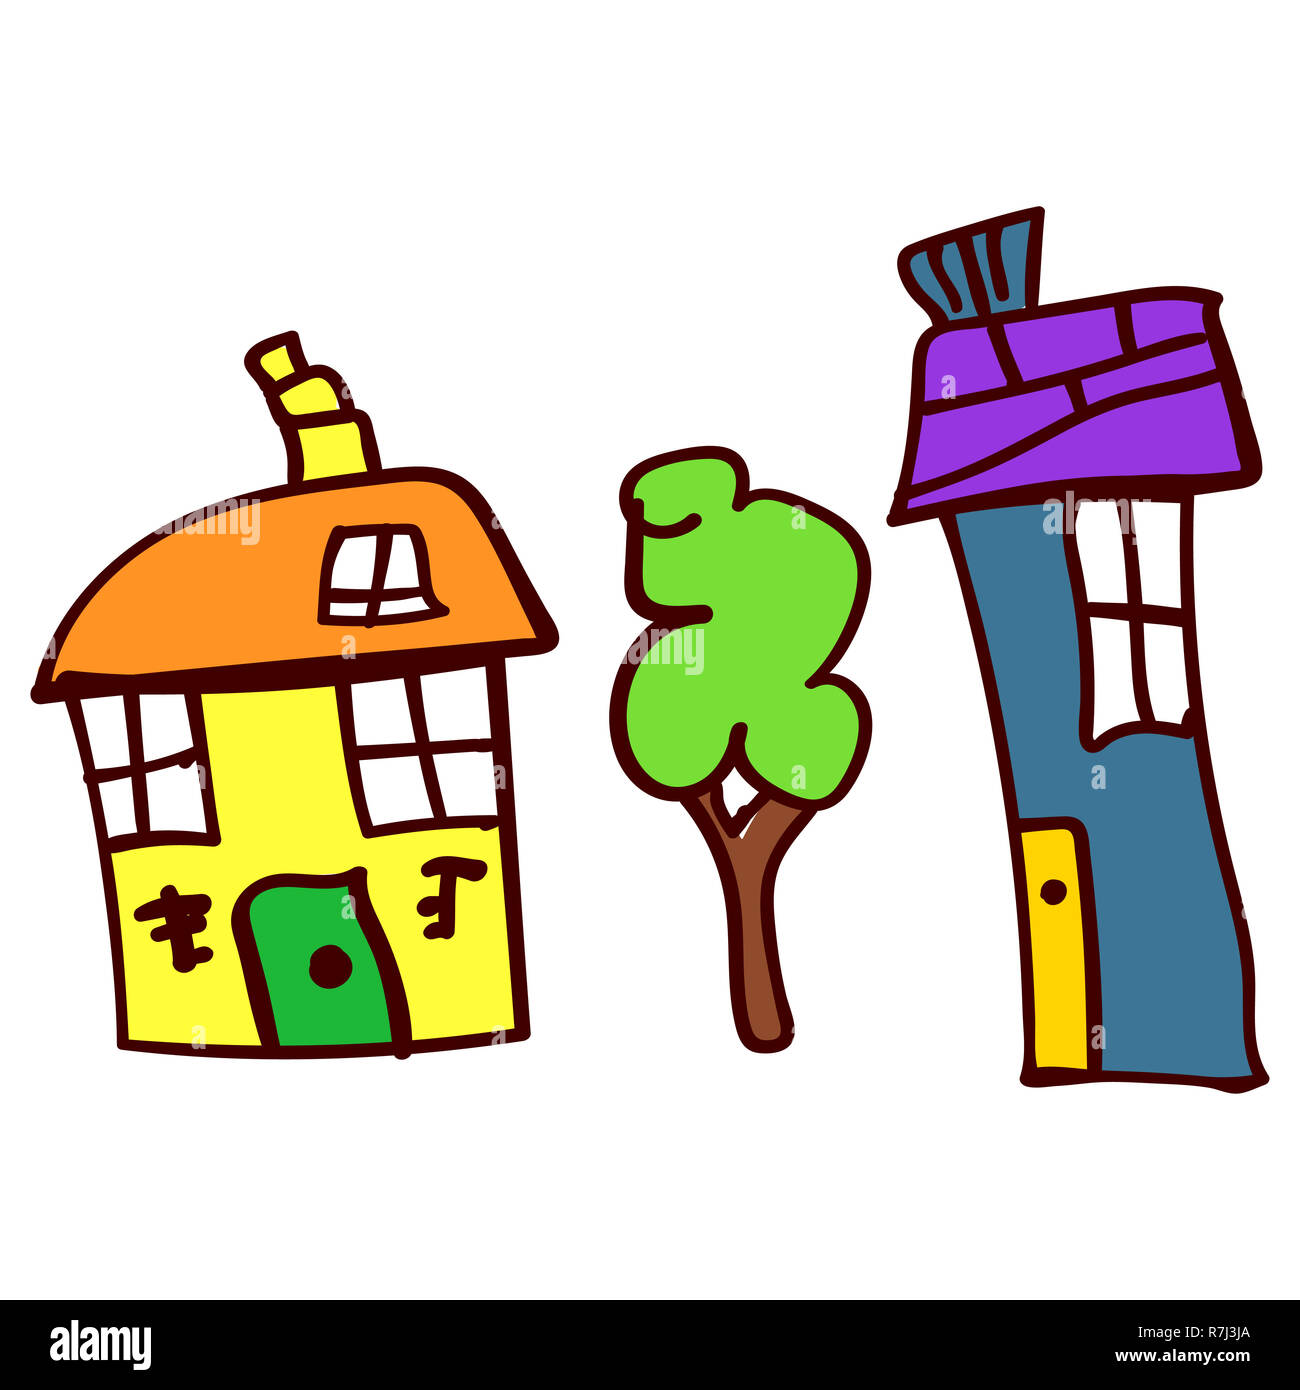 Childrens drawing with two houses and tree.  illustration. Isolated white background. - Stock Image